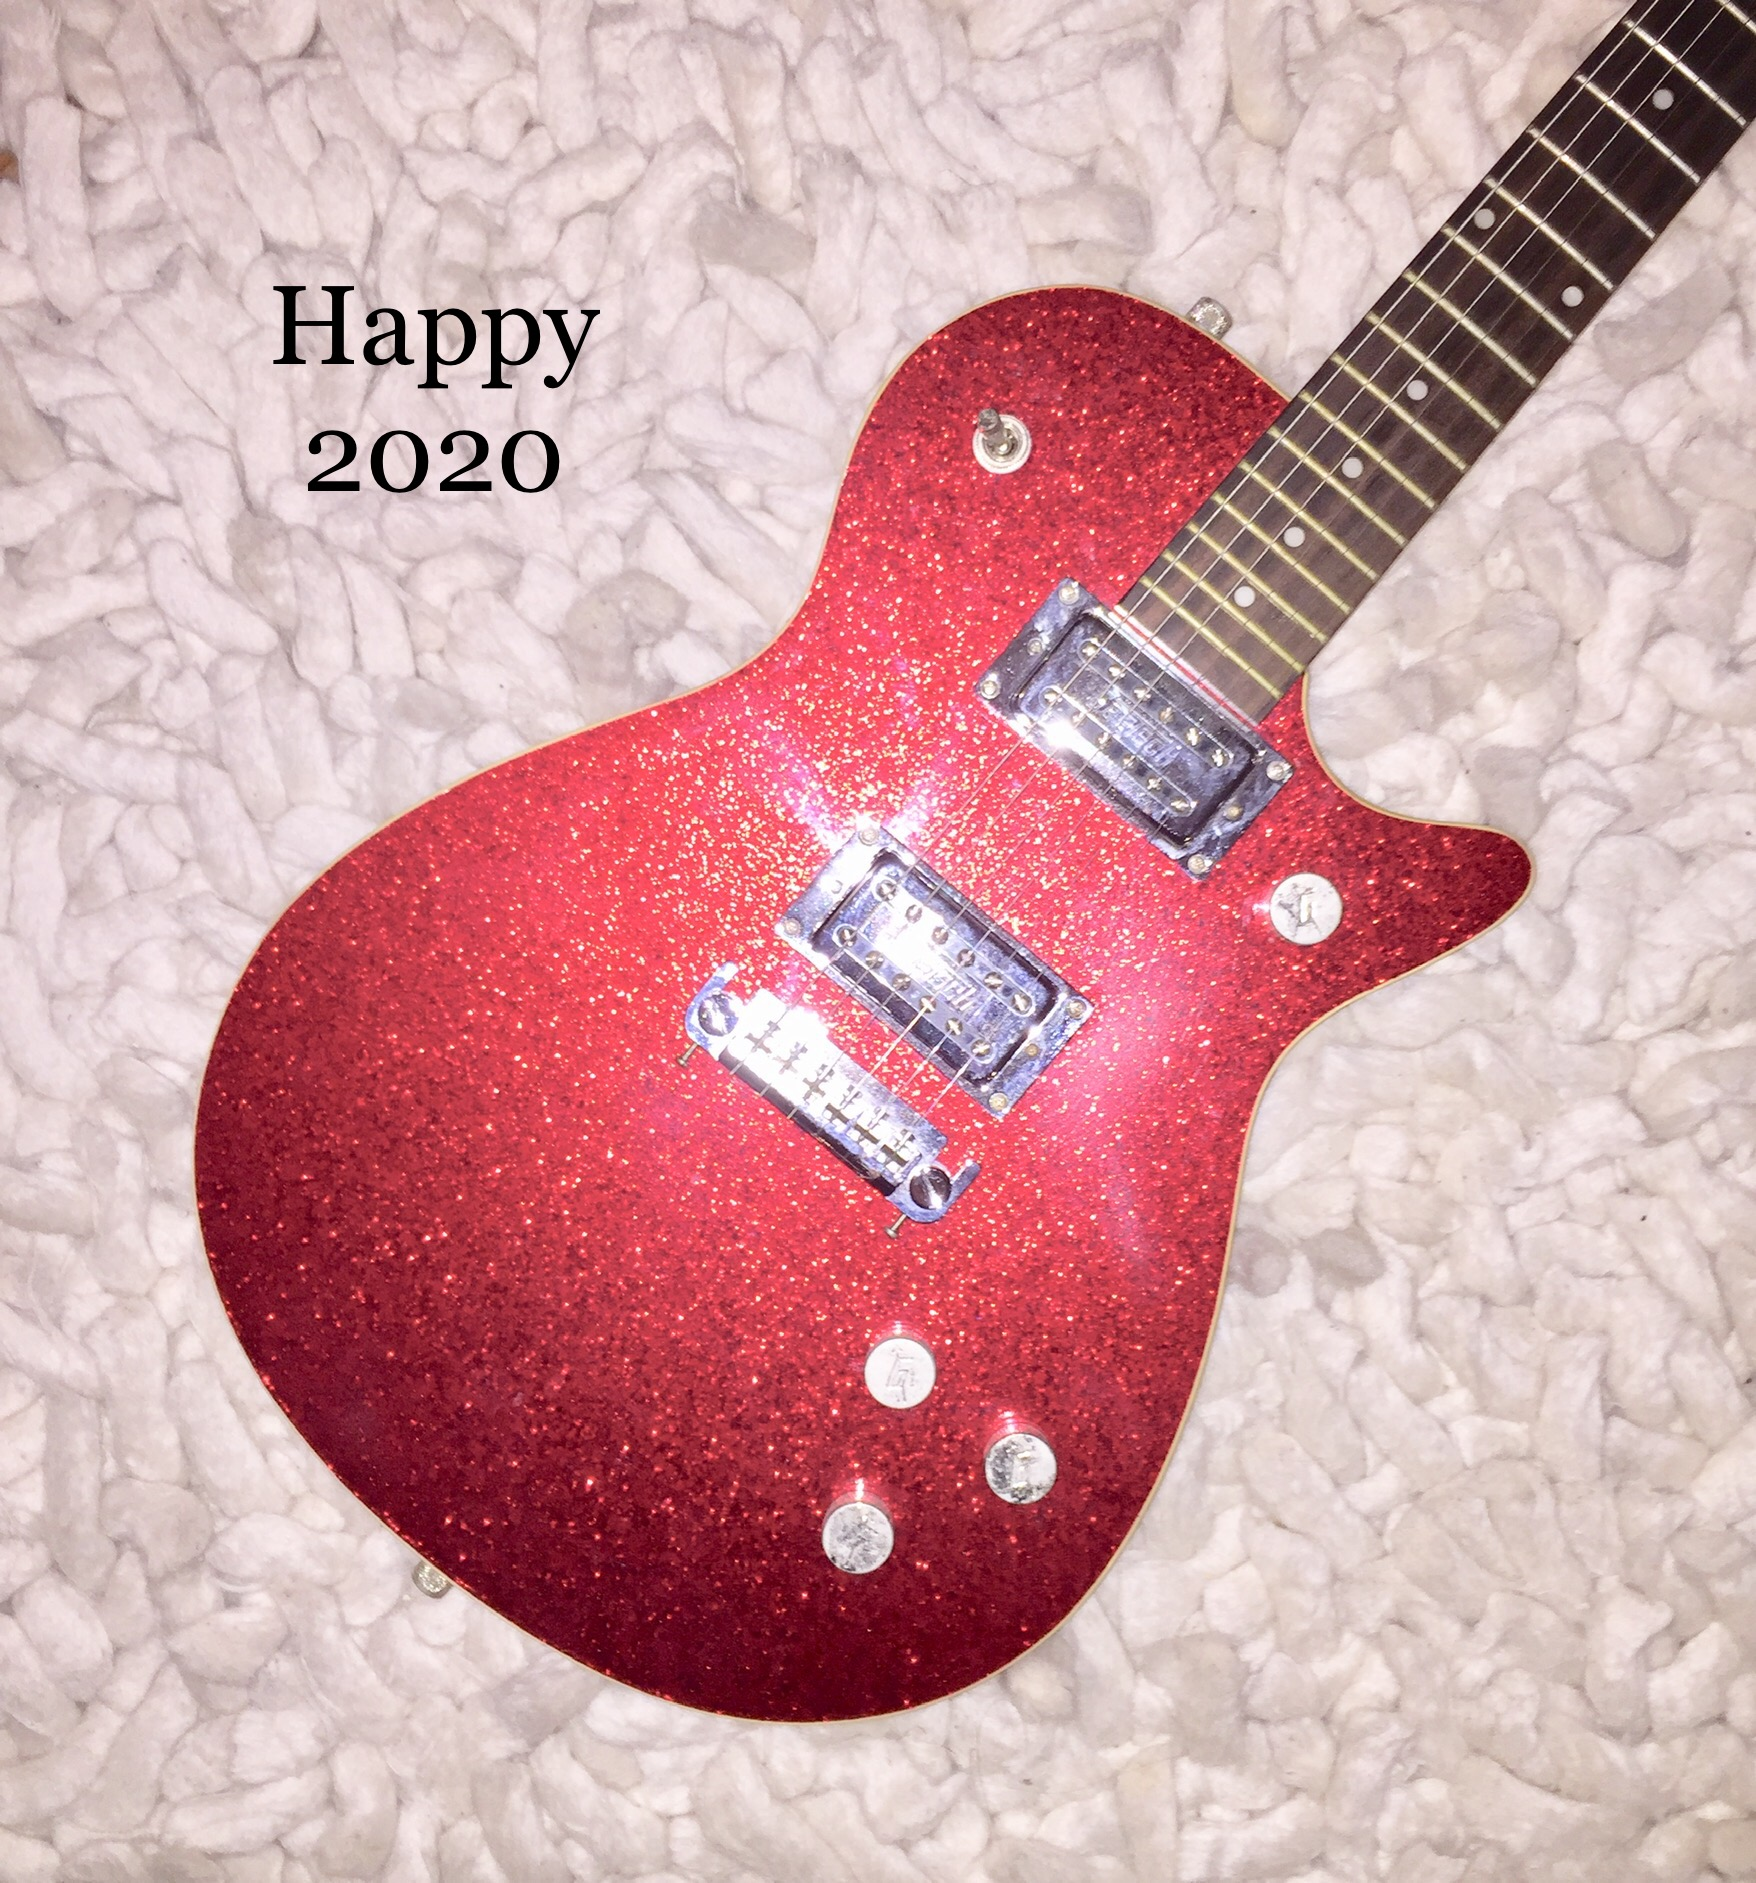 Happy 2020 from Lemon Amsterdam